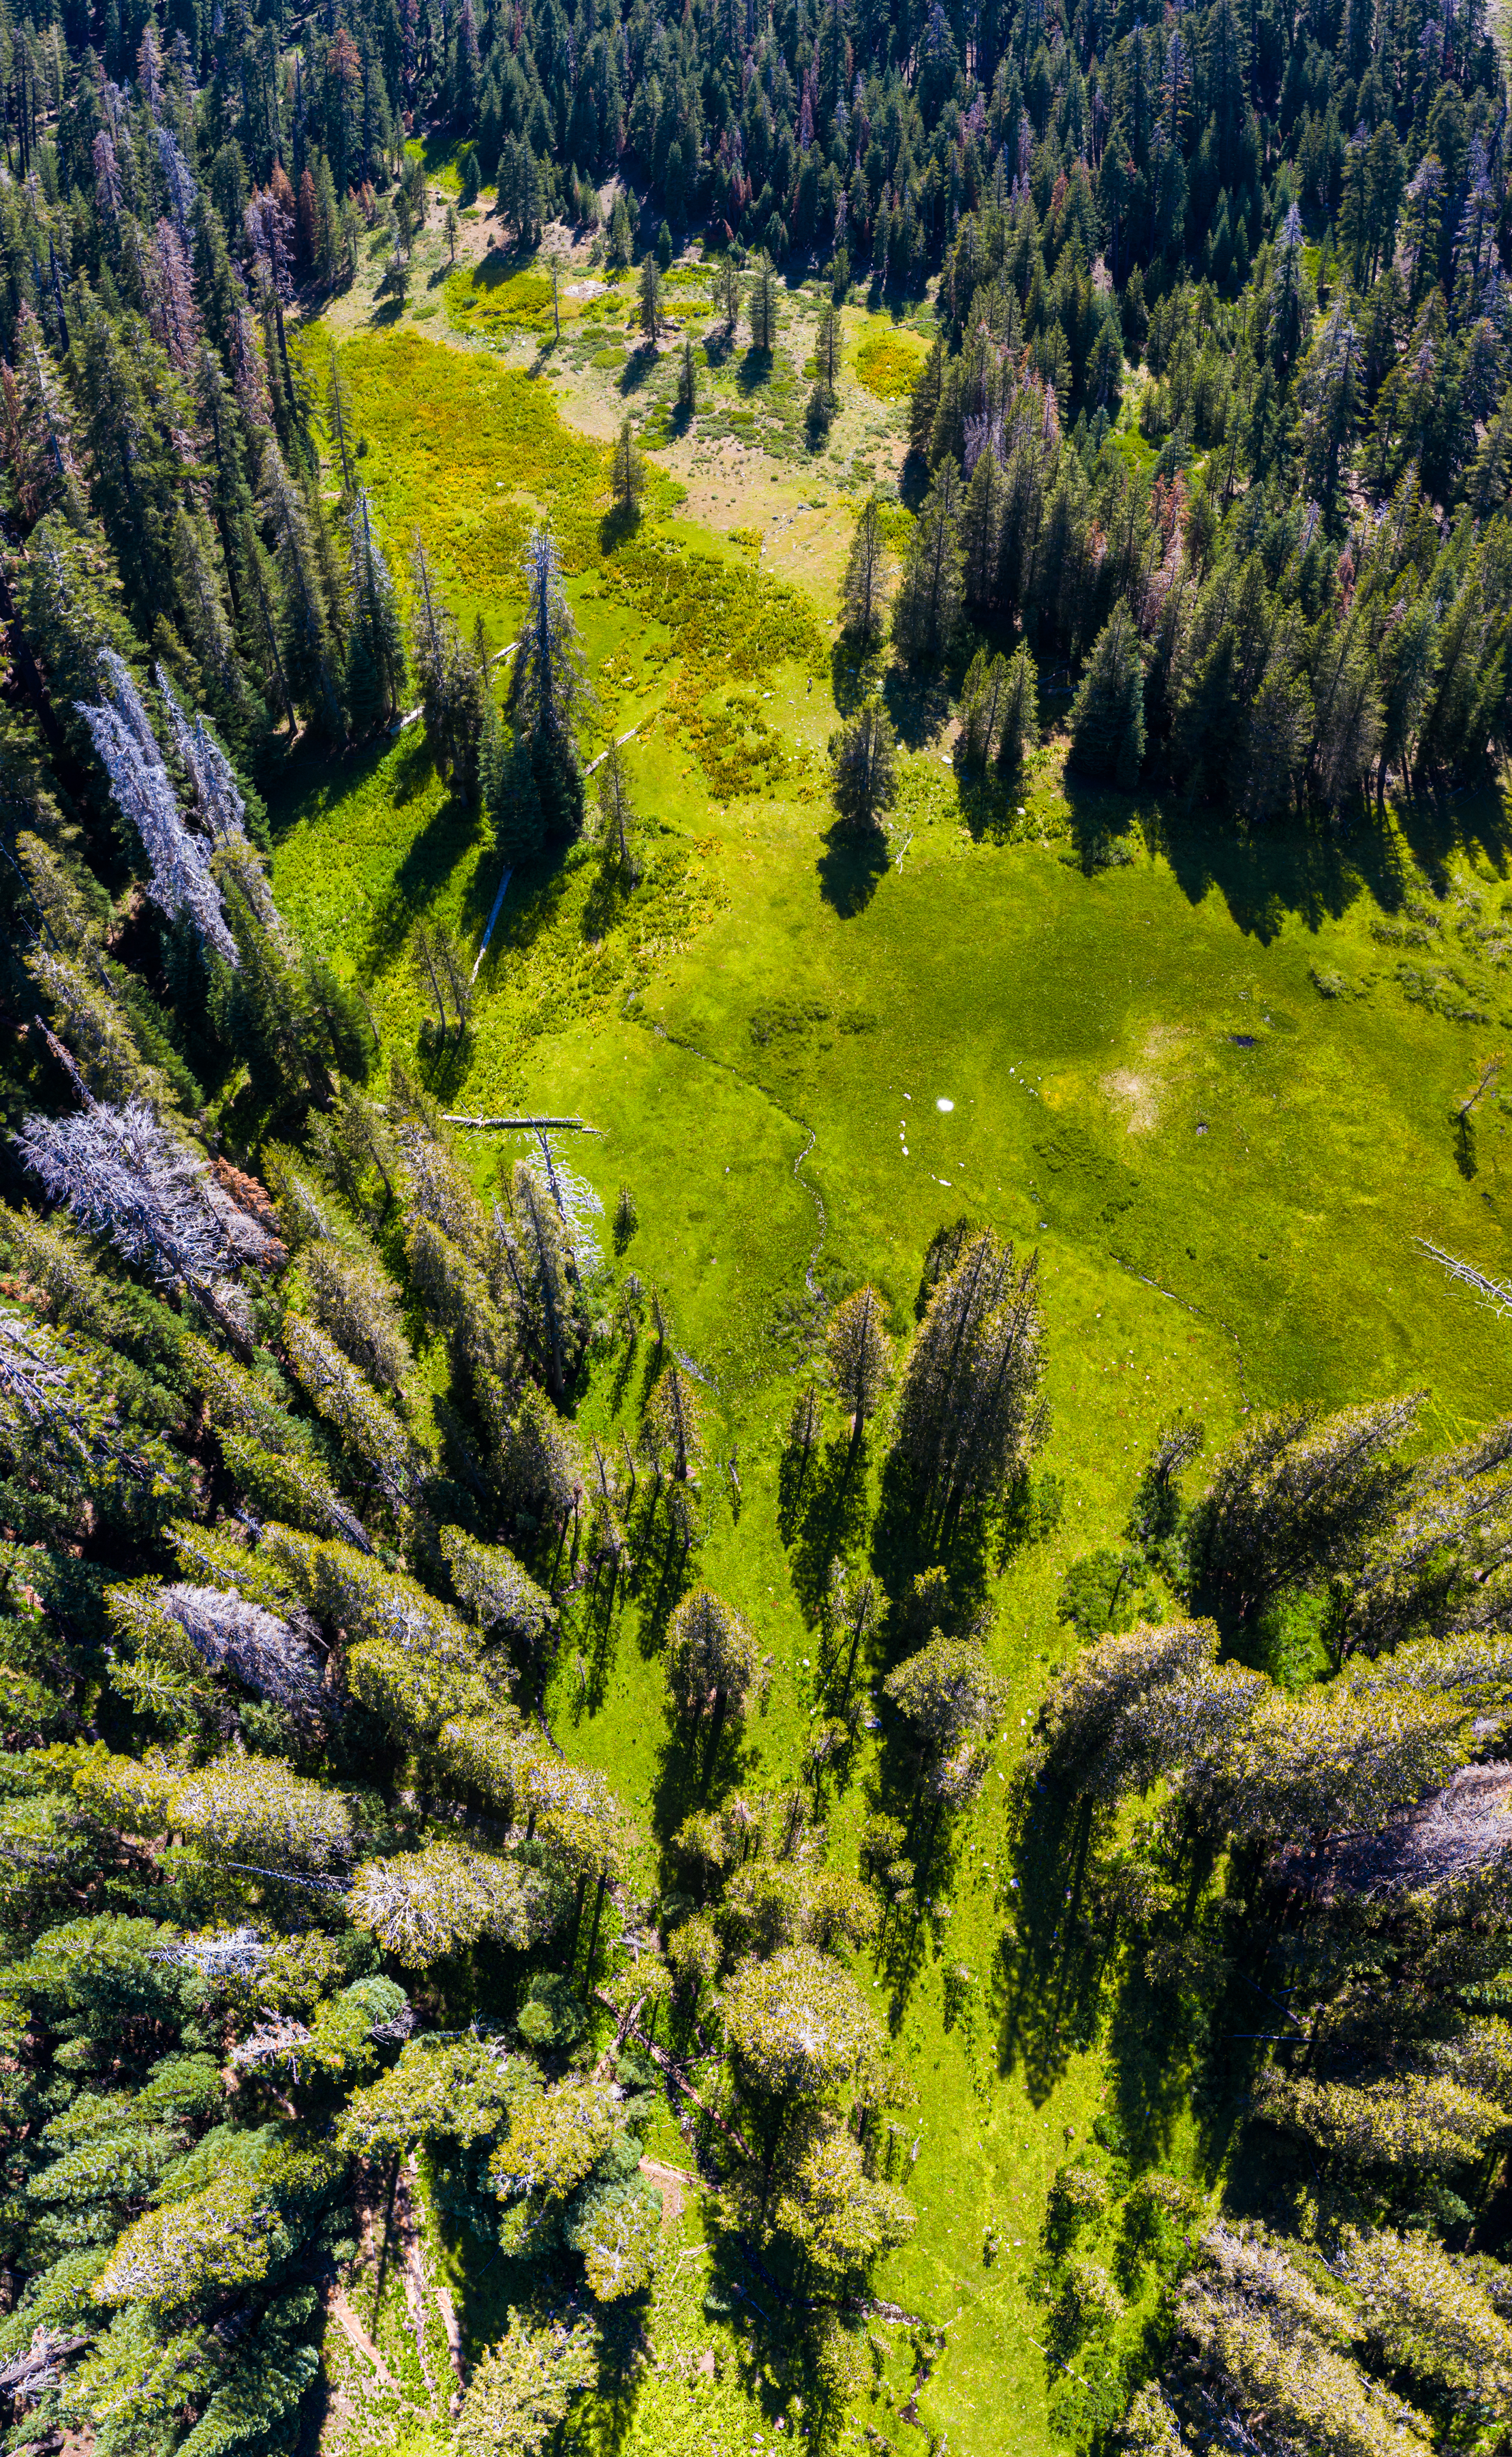 meadow, aerial, drone, forest, Sierra National Forest, Sierra Nevada, pine trees